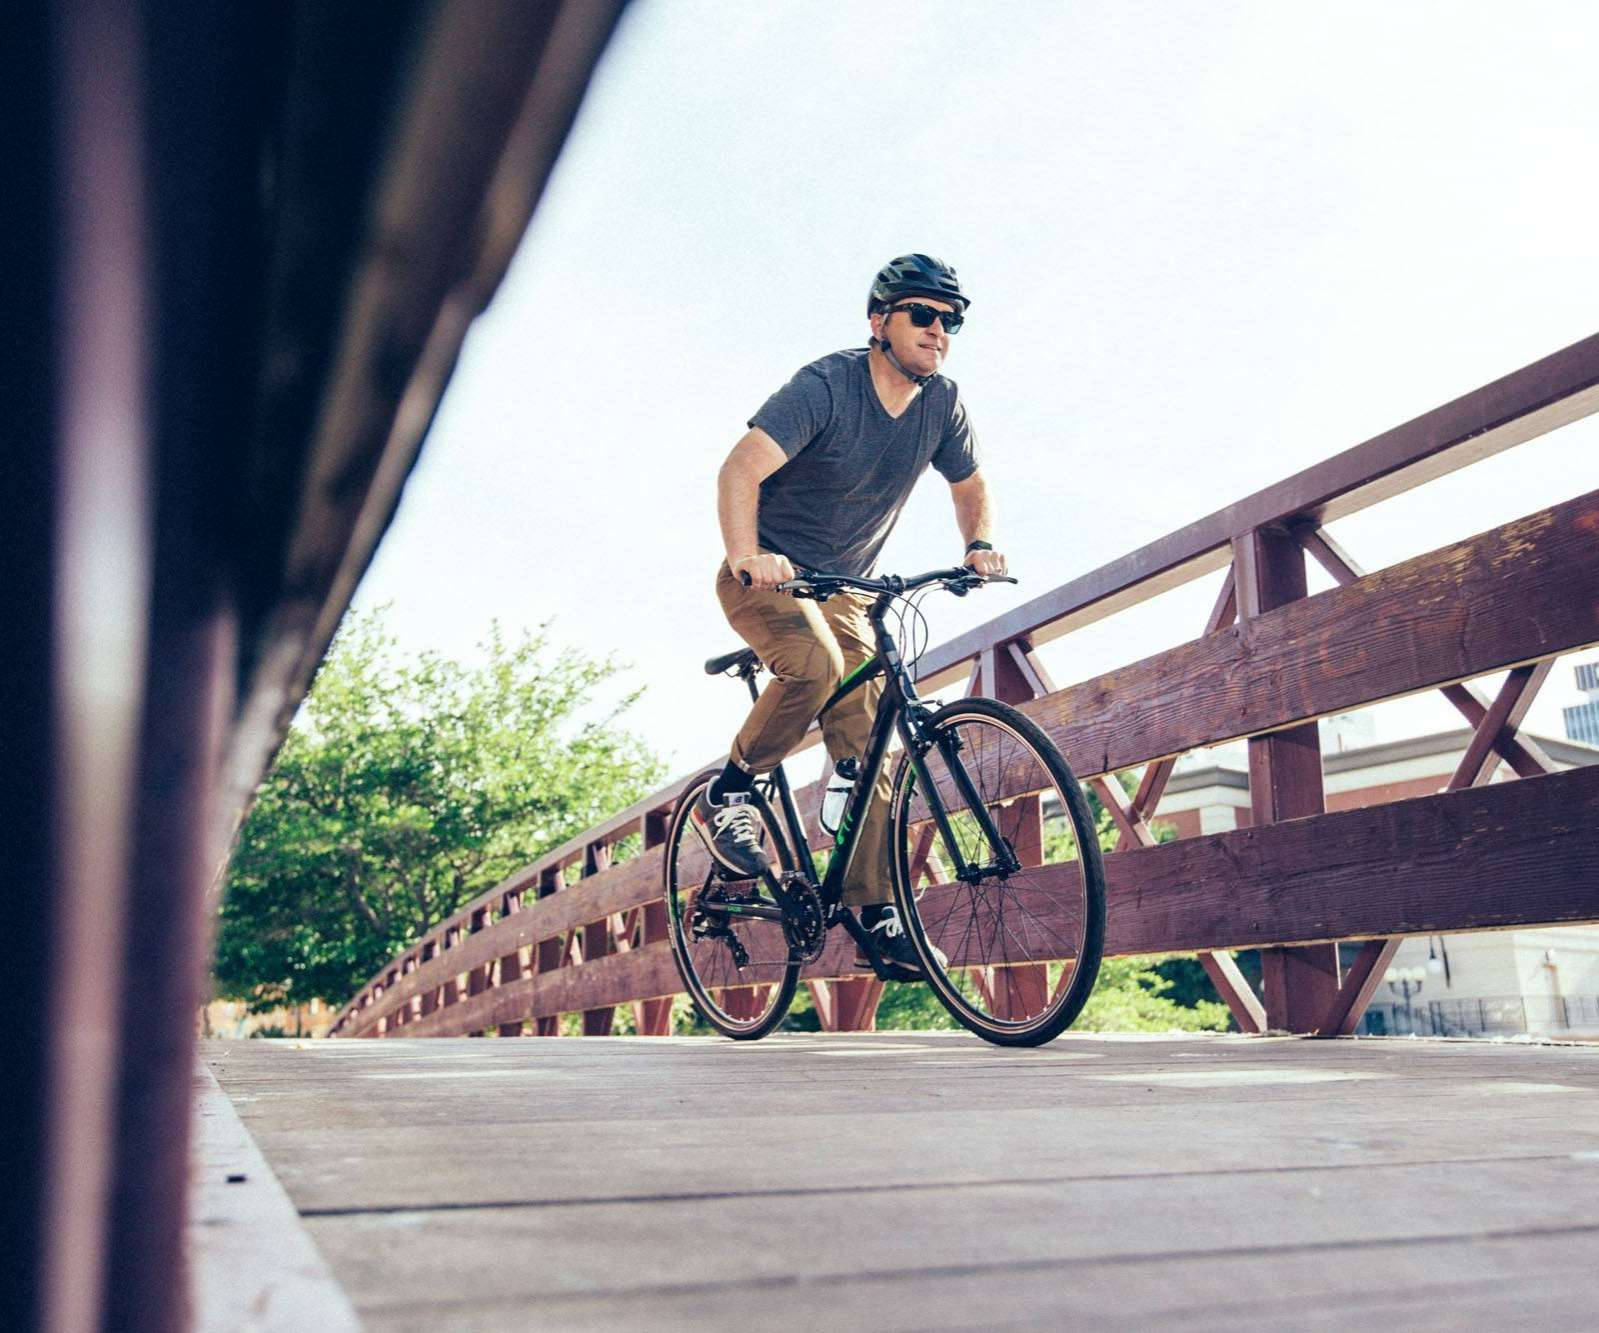 Person commuting on a bike over a bridge